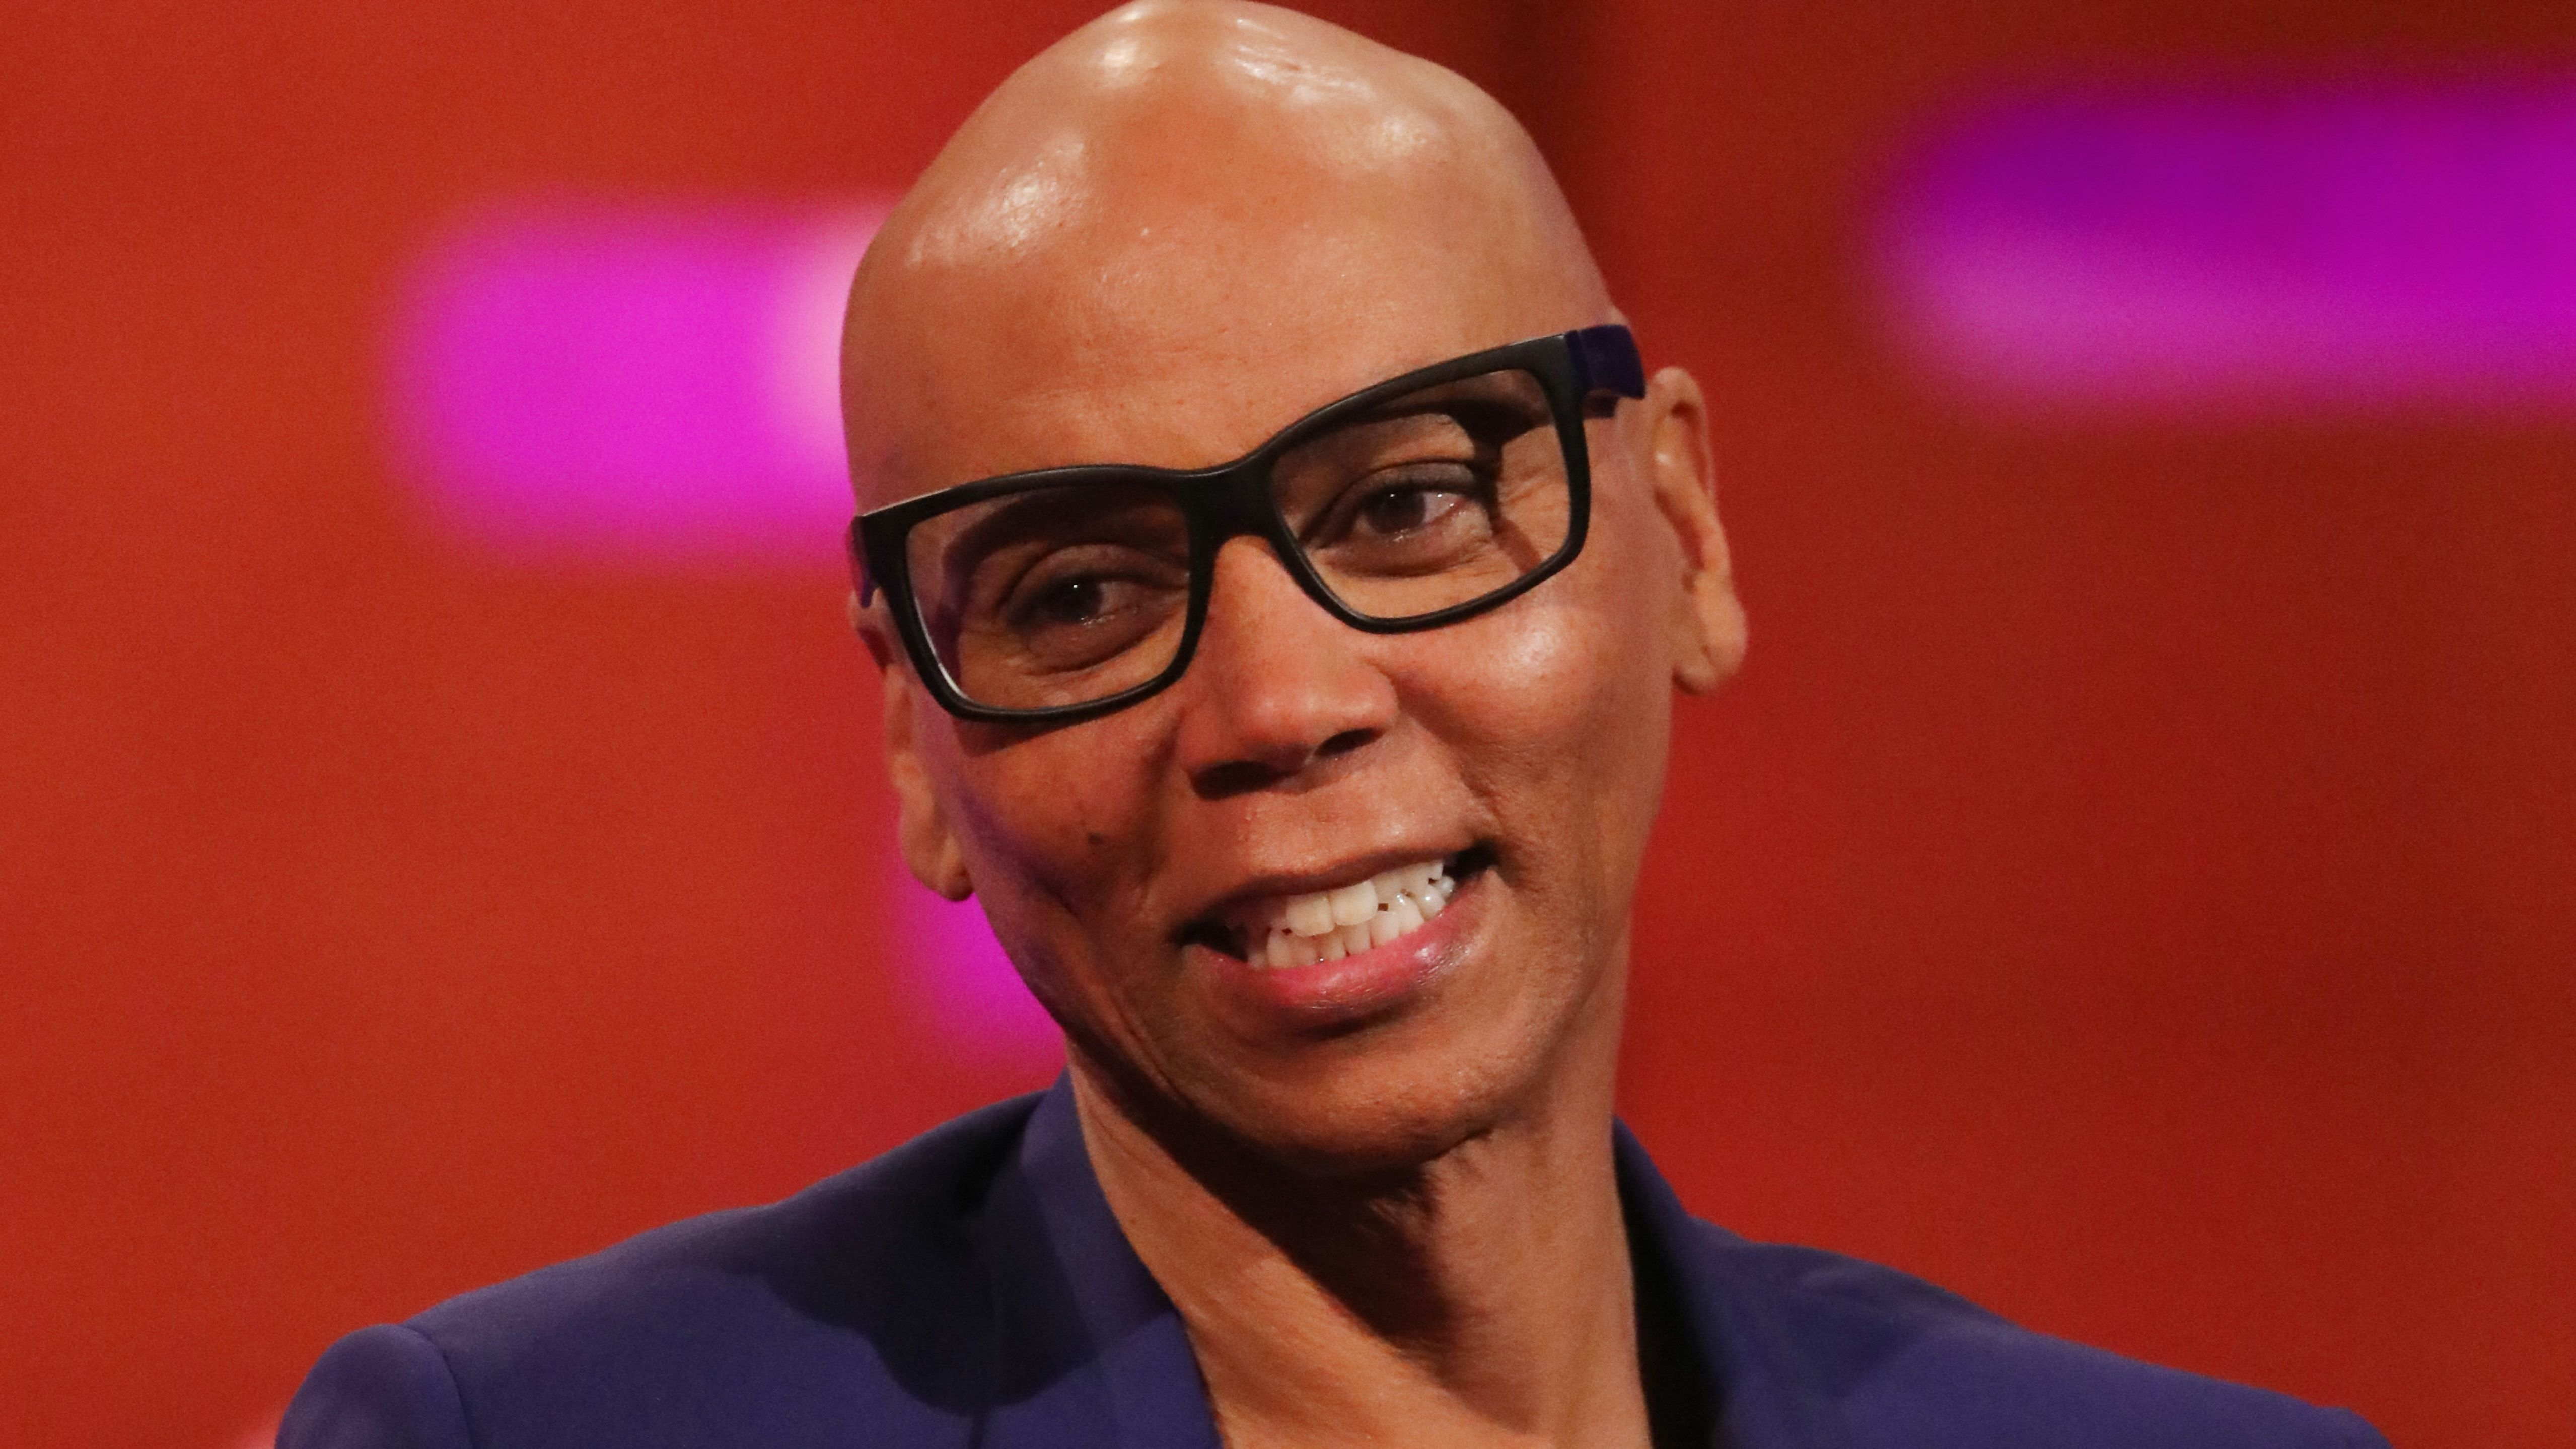 Children's book about RuPaul aims to 'break stereotypes' about little boys